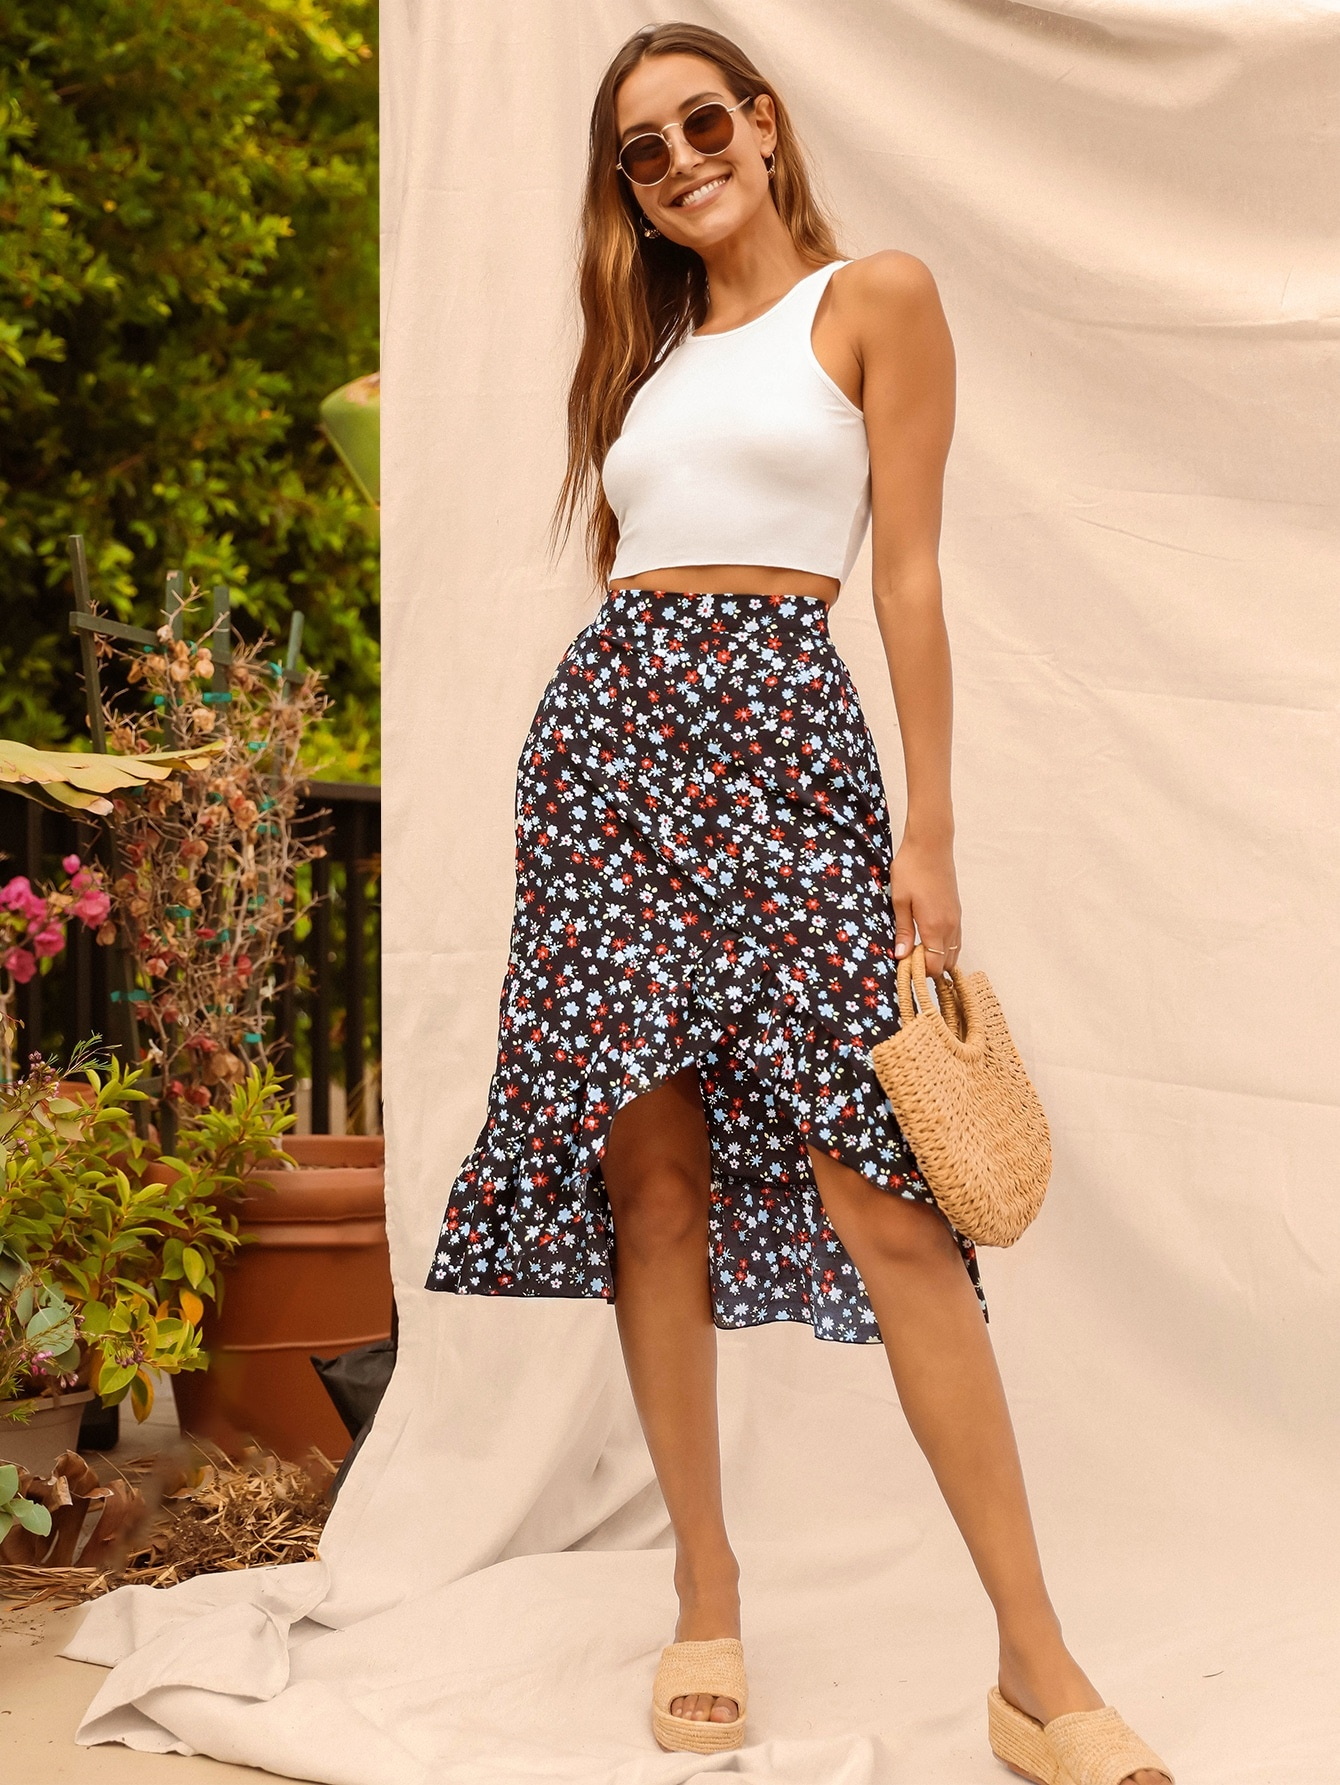 Skirts for women over 40 shein